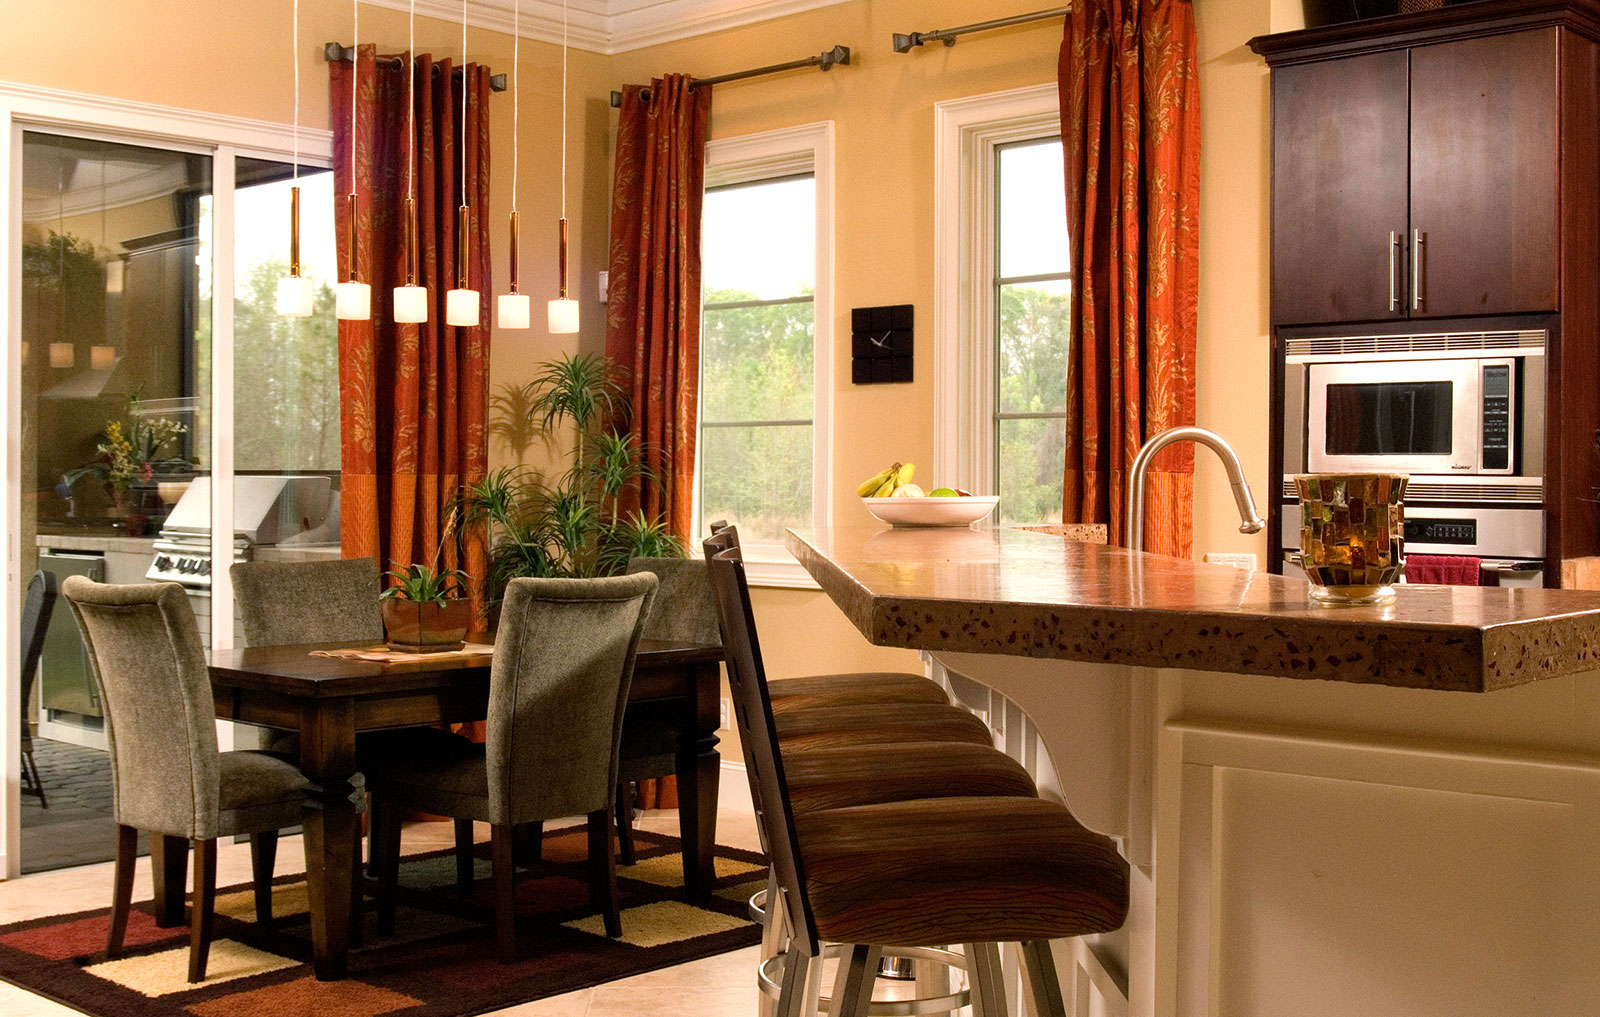 Interior-Design-Bluffton-Hilton-Head-Savannah-Dining-Room-12.jpg